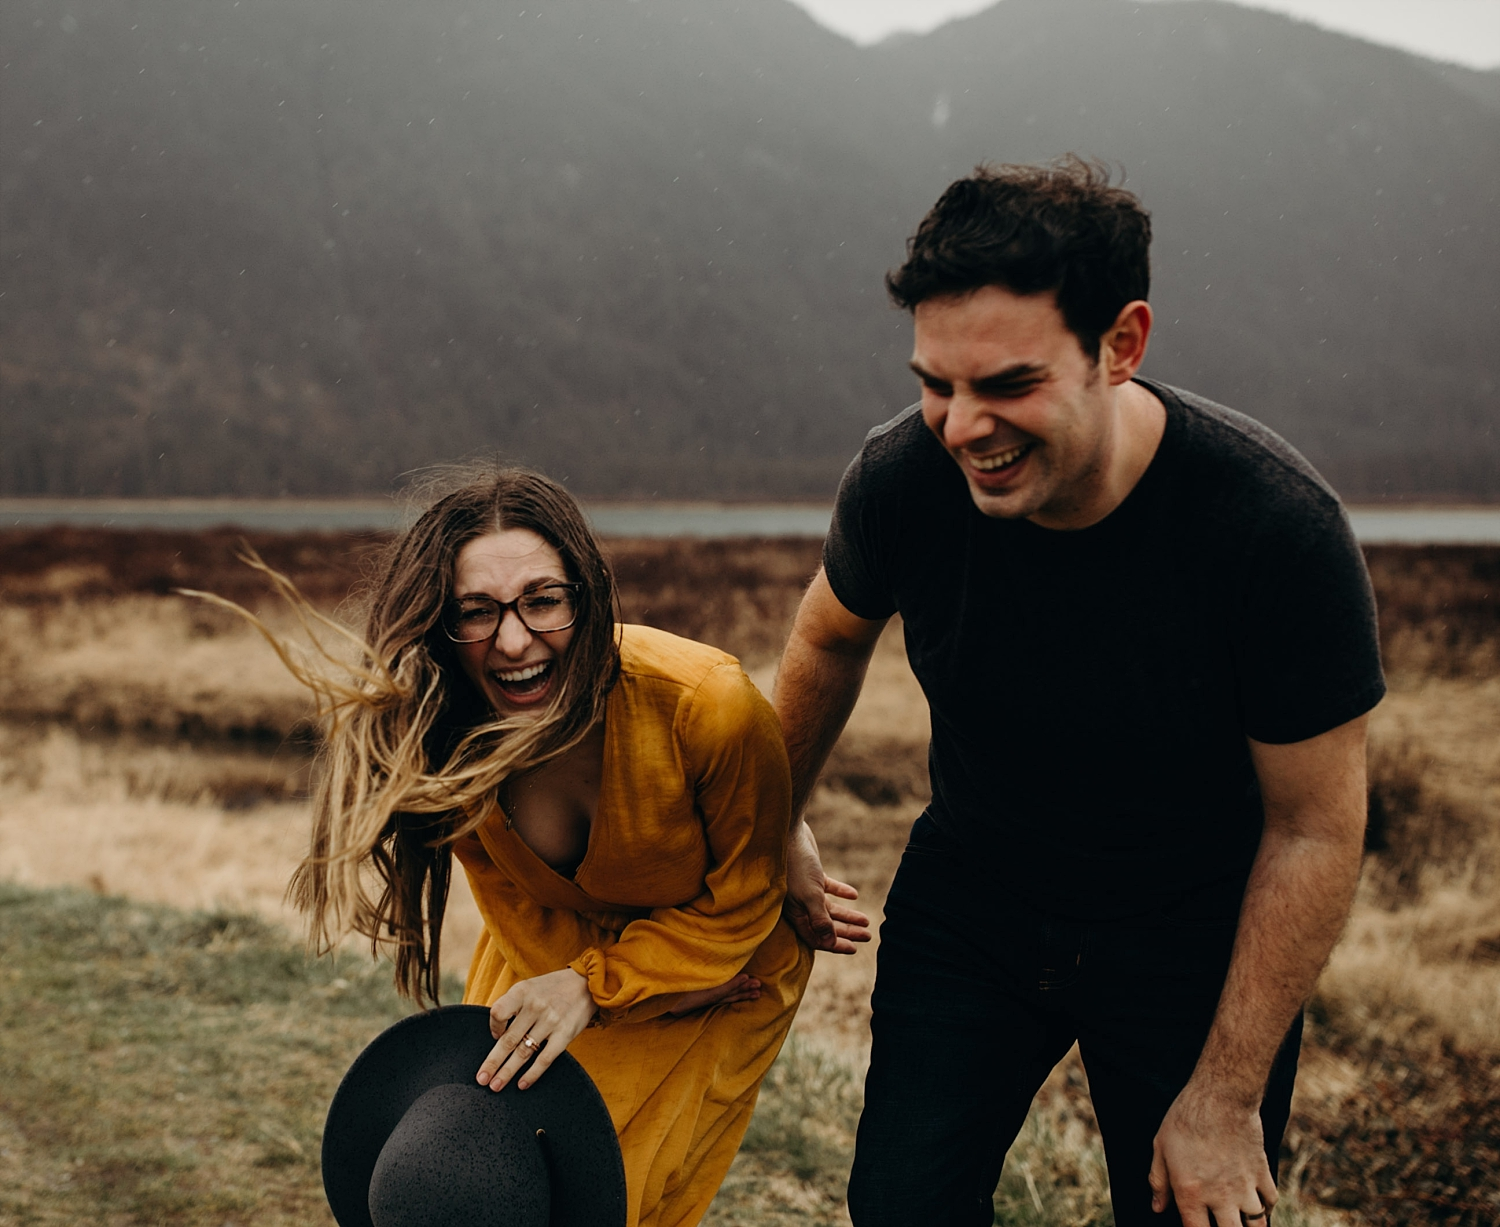 The McLachlans - Vancouver Wedding Photographers - Pitt Lake Engagements - Dan and Alleigra_0013.jpg